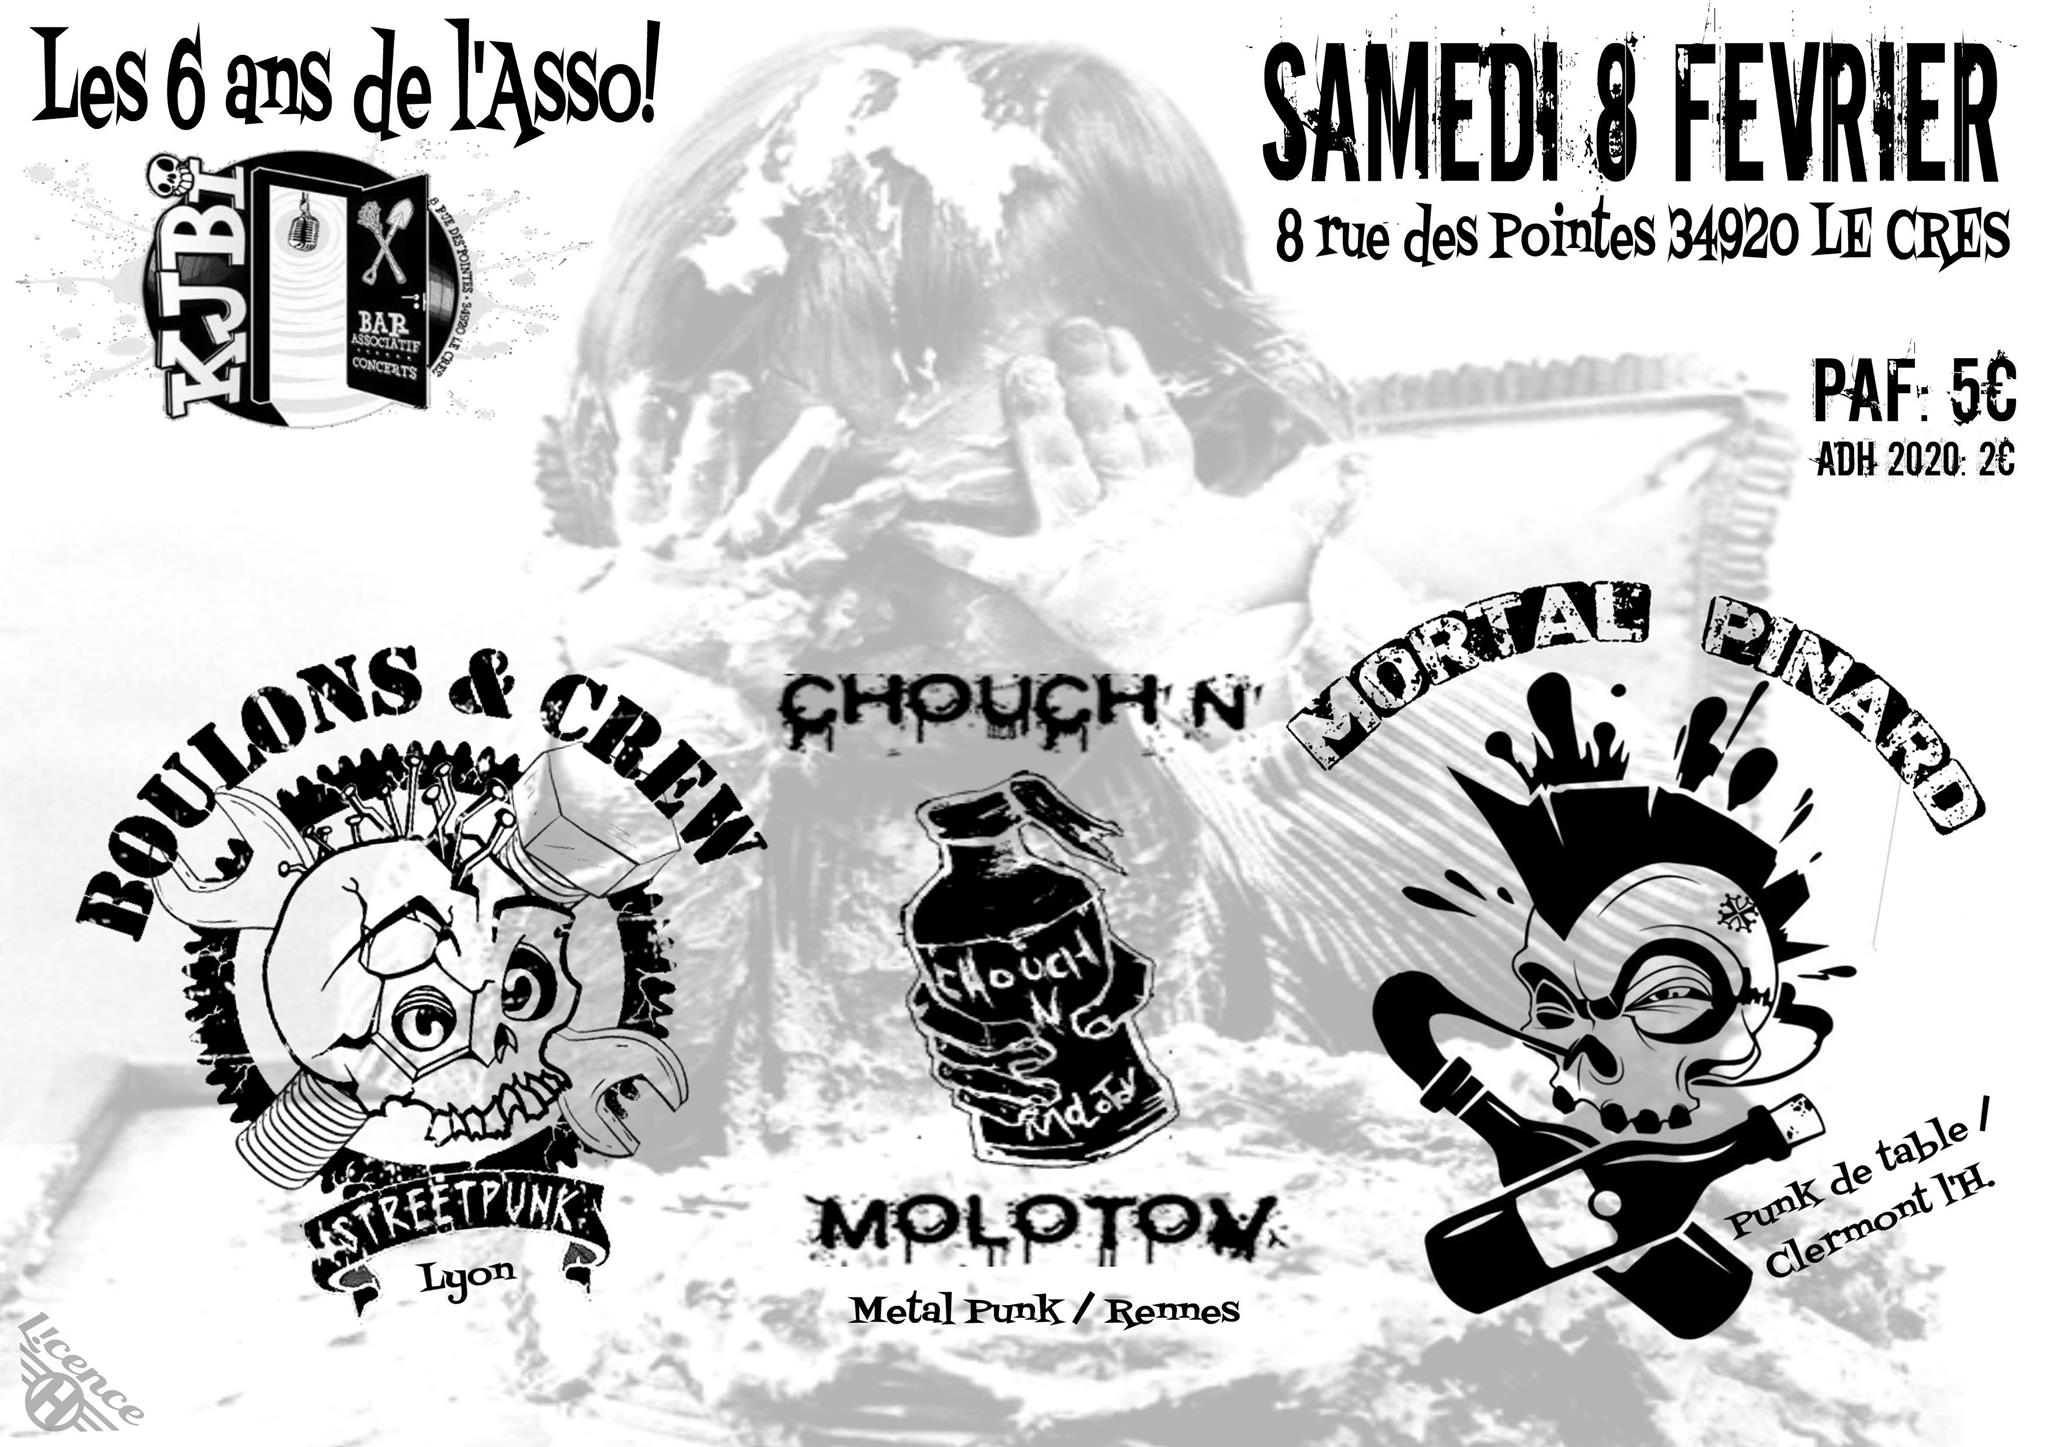 6 ans ! Chouch'n Molotov / Boulons & Crew / Mortal Pinard